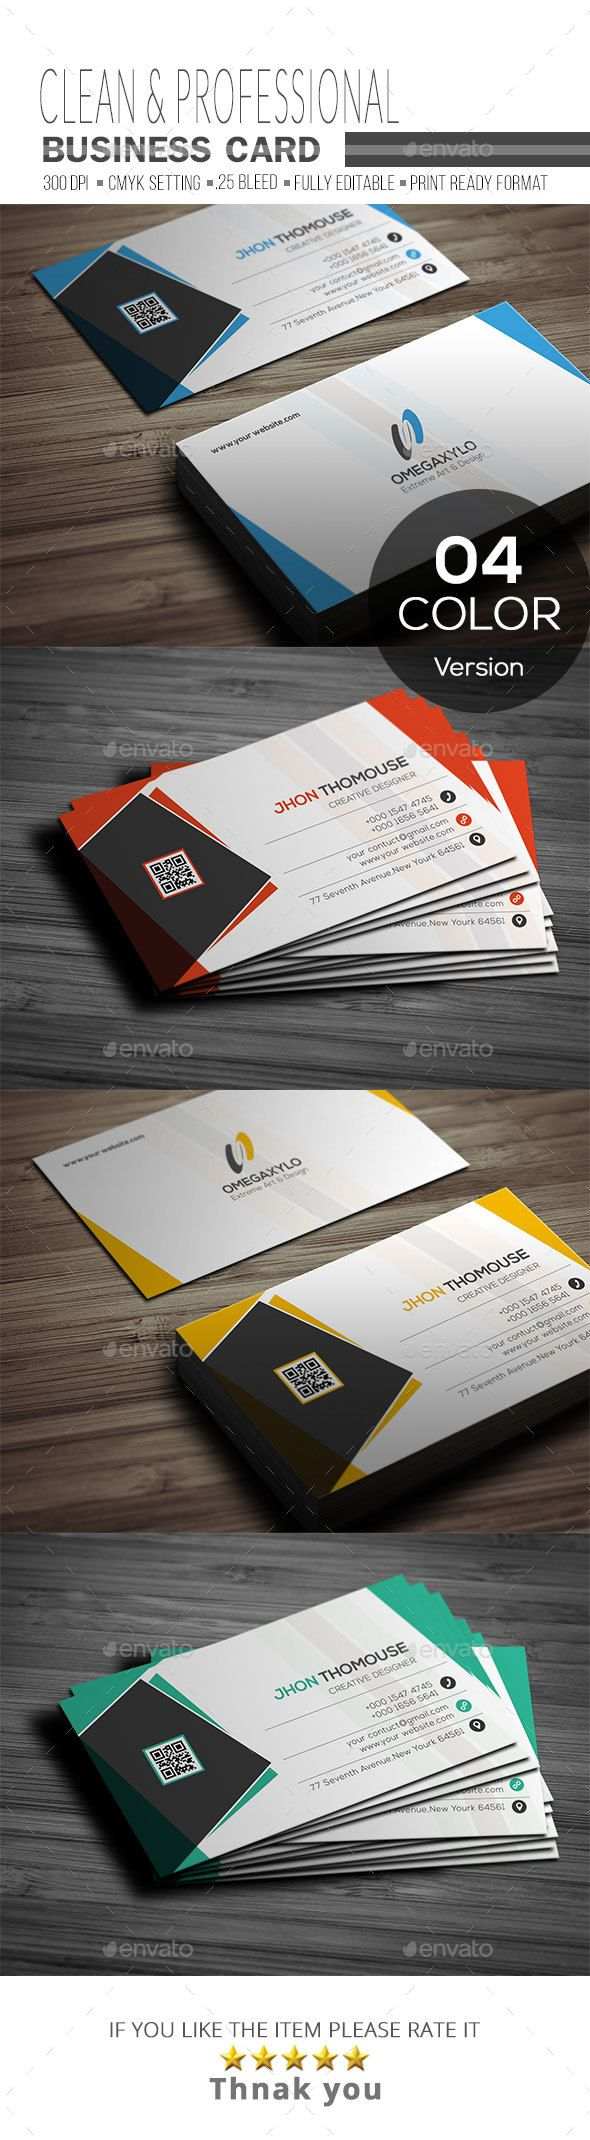 16 Best Qr Code Business Cards Images On Pinterest Qr Codes Qr